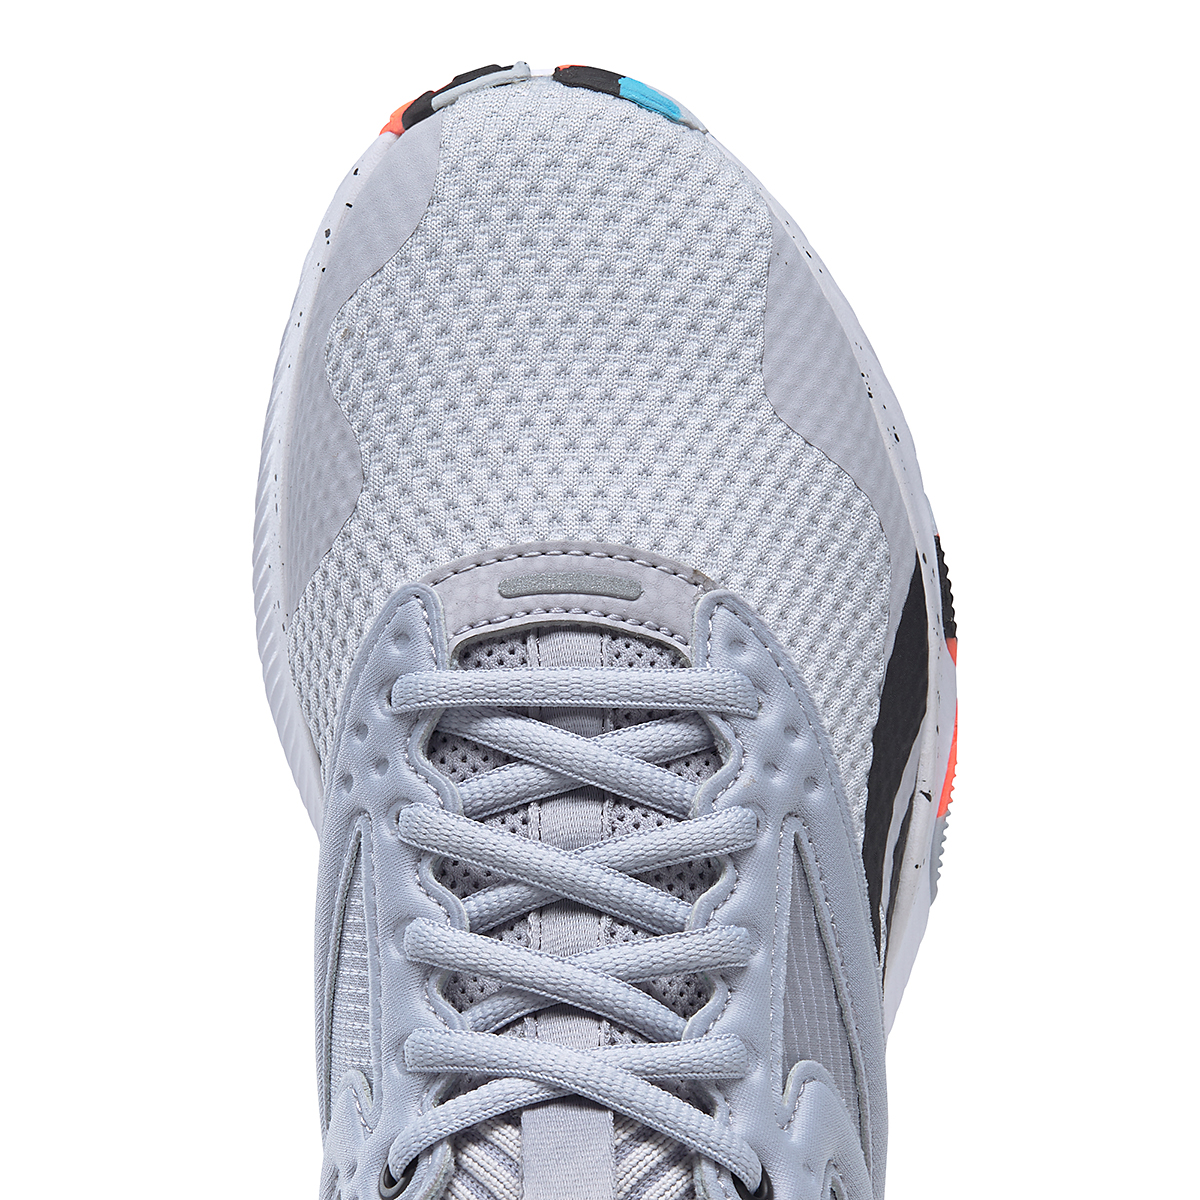 Women's Reebok HIIT TR Training Shoes - Color: Cold Grey 2/Orange Flare /Radiant Aqua - Size: 5 - Width: Regular, Cold Grey 2/Orange Flare /Radiant Aqua, large, image 4